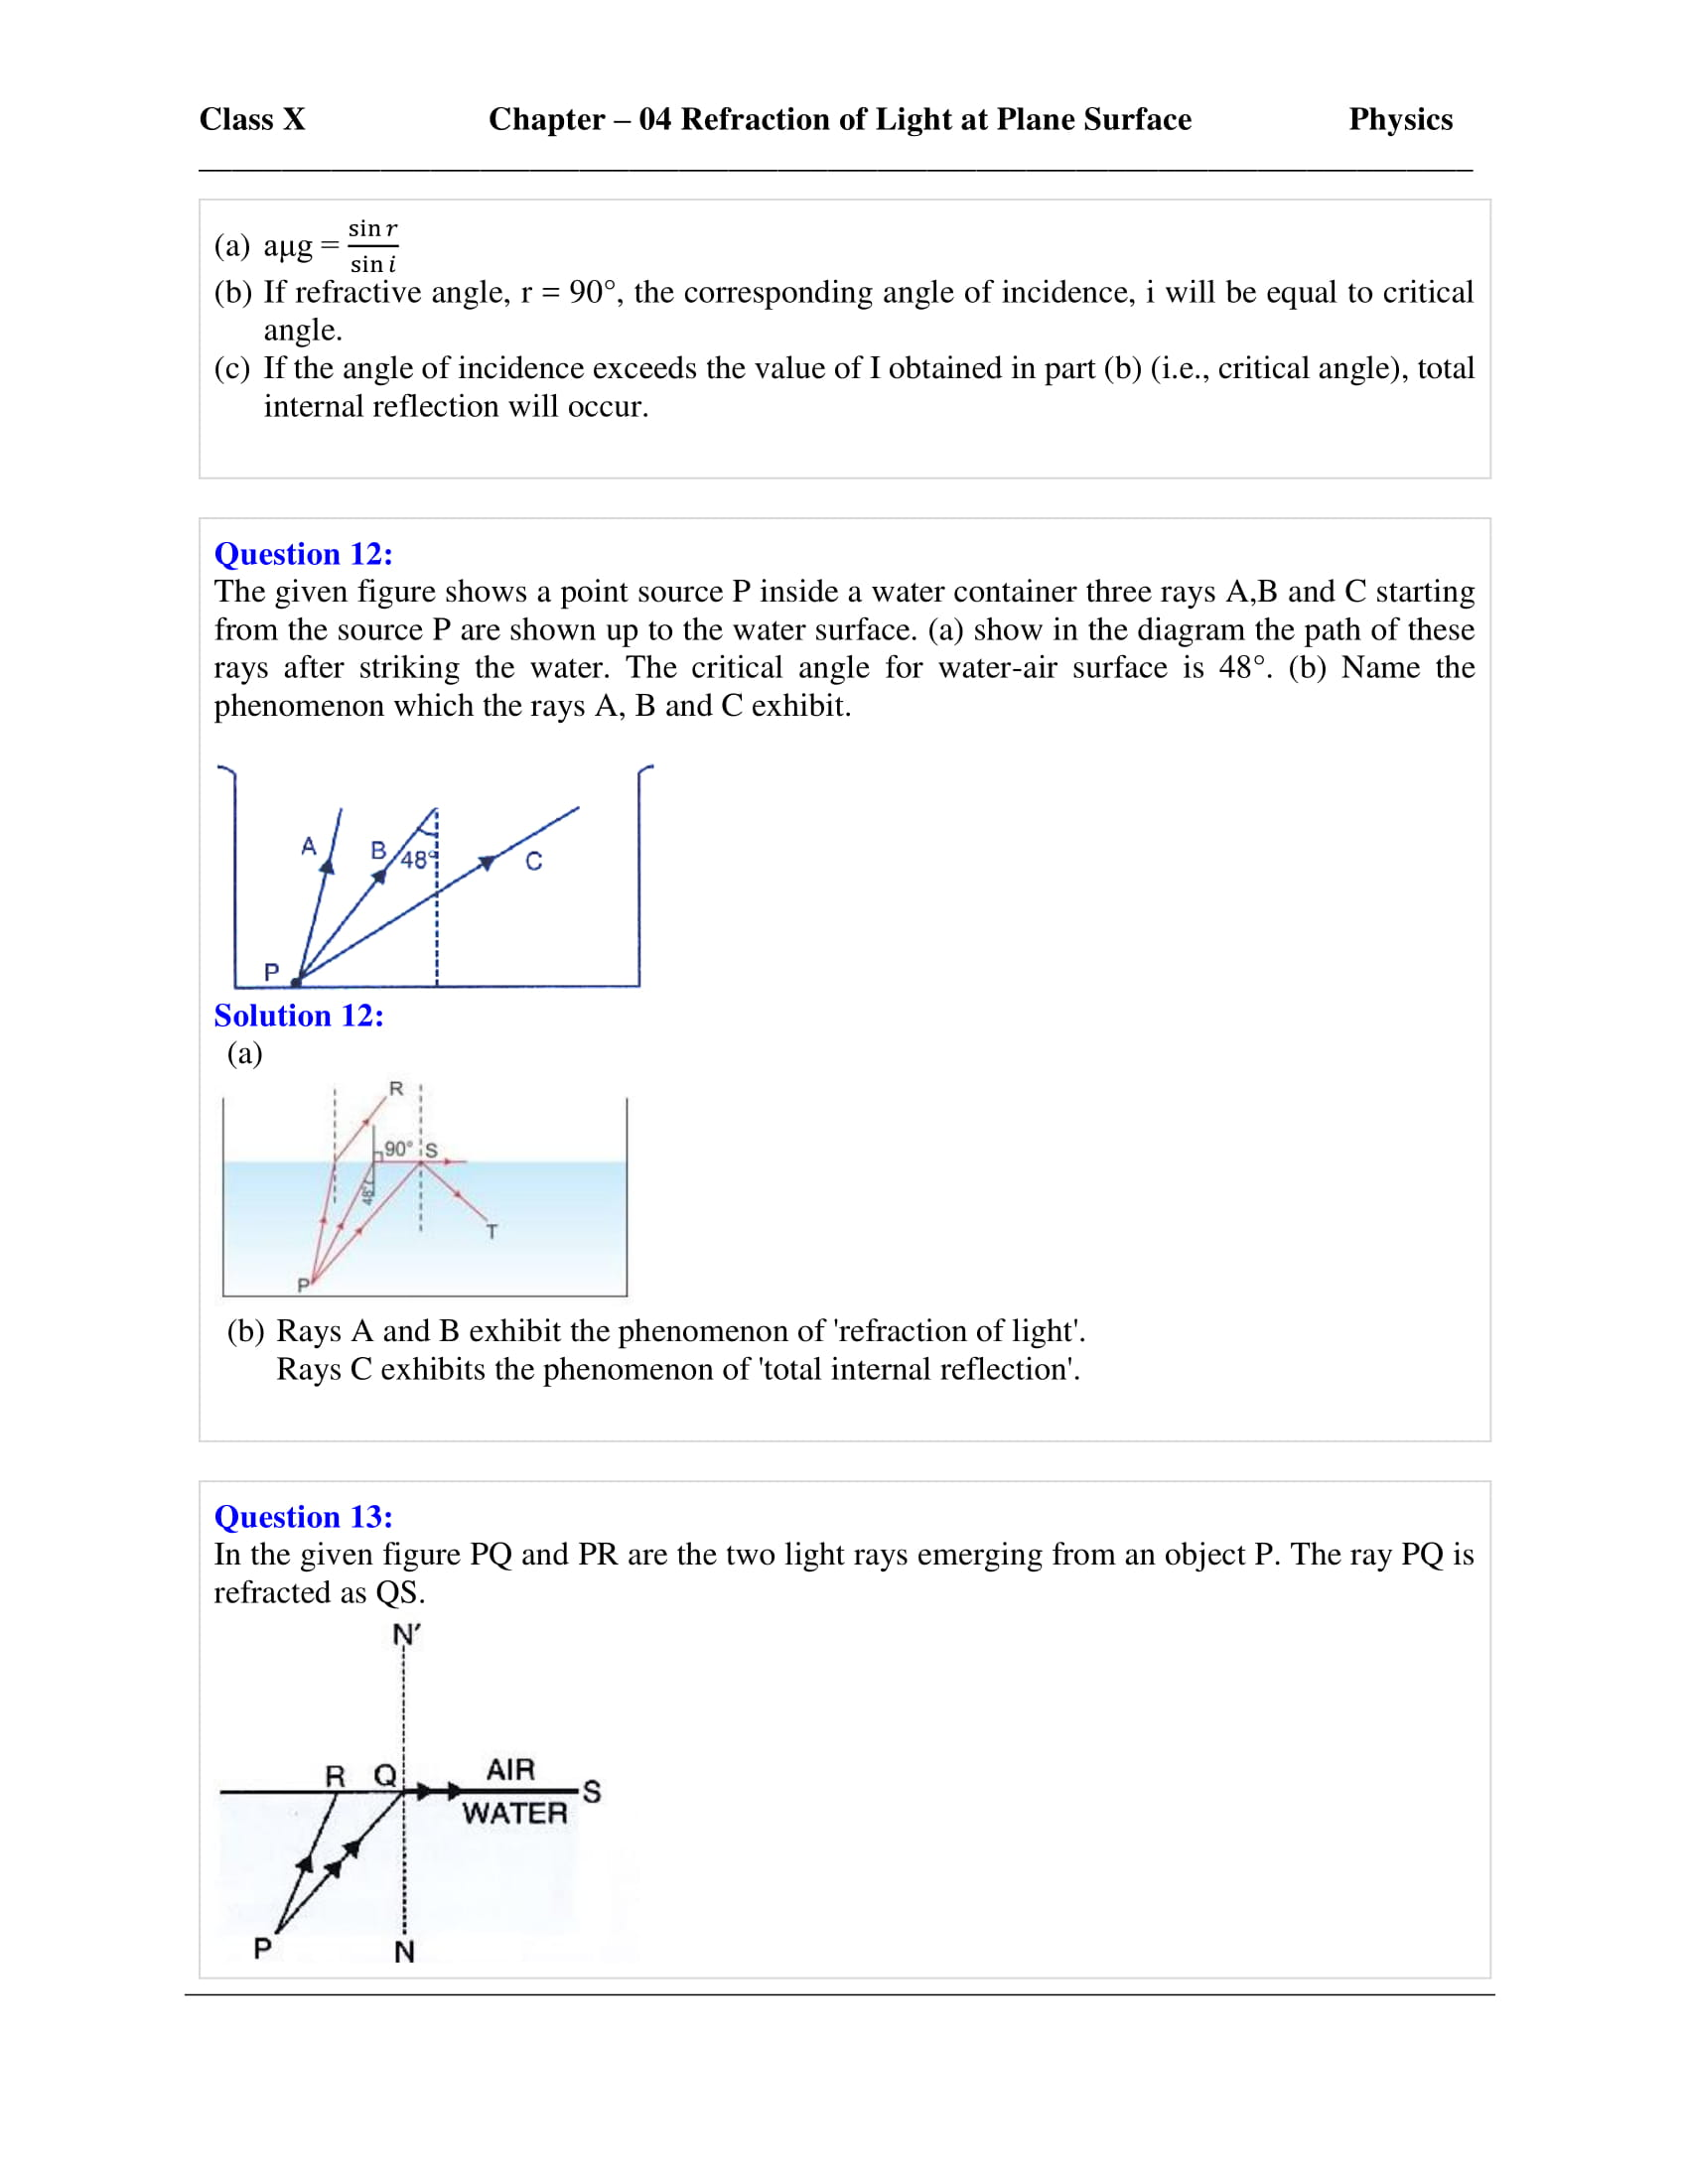 icse-selina-physics-solutions-class-10-chapter-4-refraction-of-light-at-plane-surfaces-31